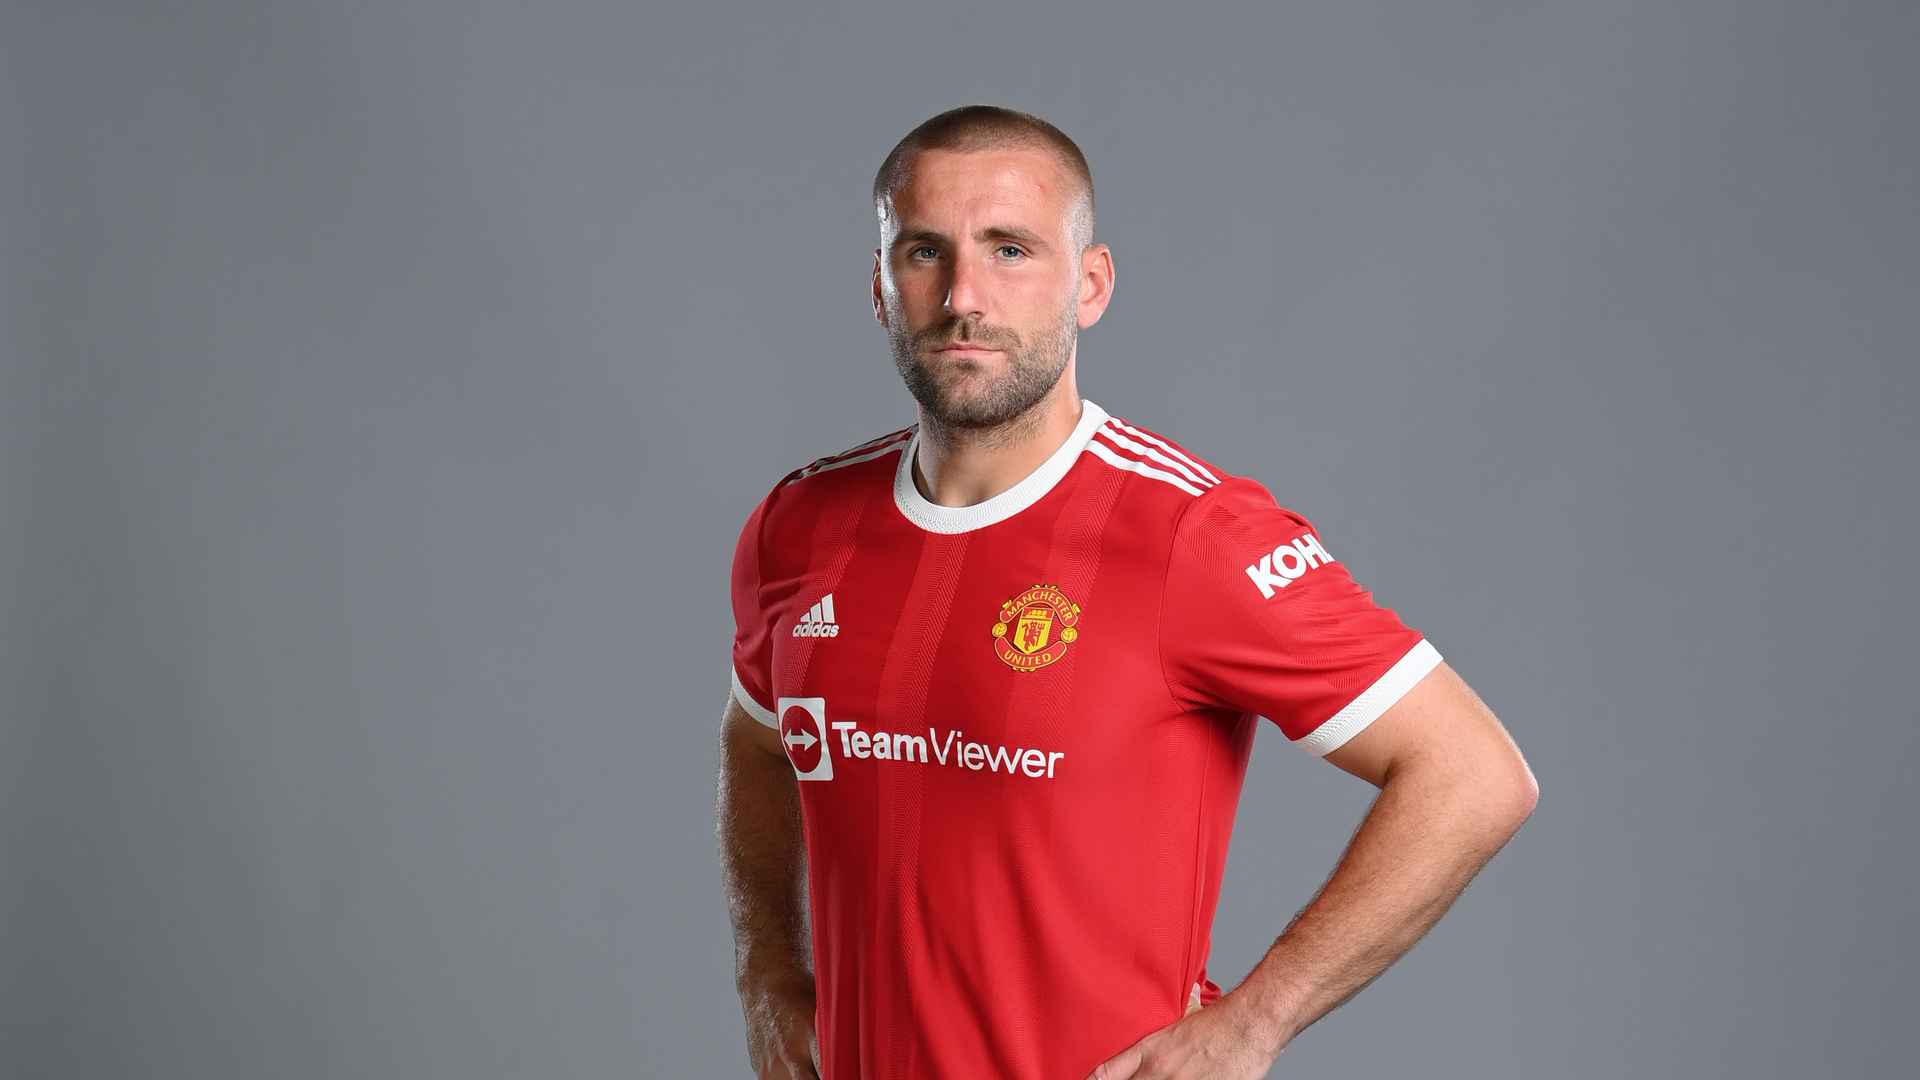 Shaw opens up on recent injury issues